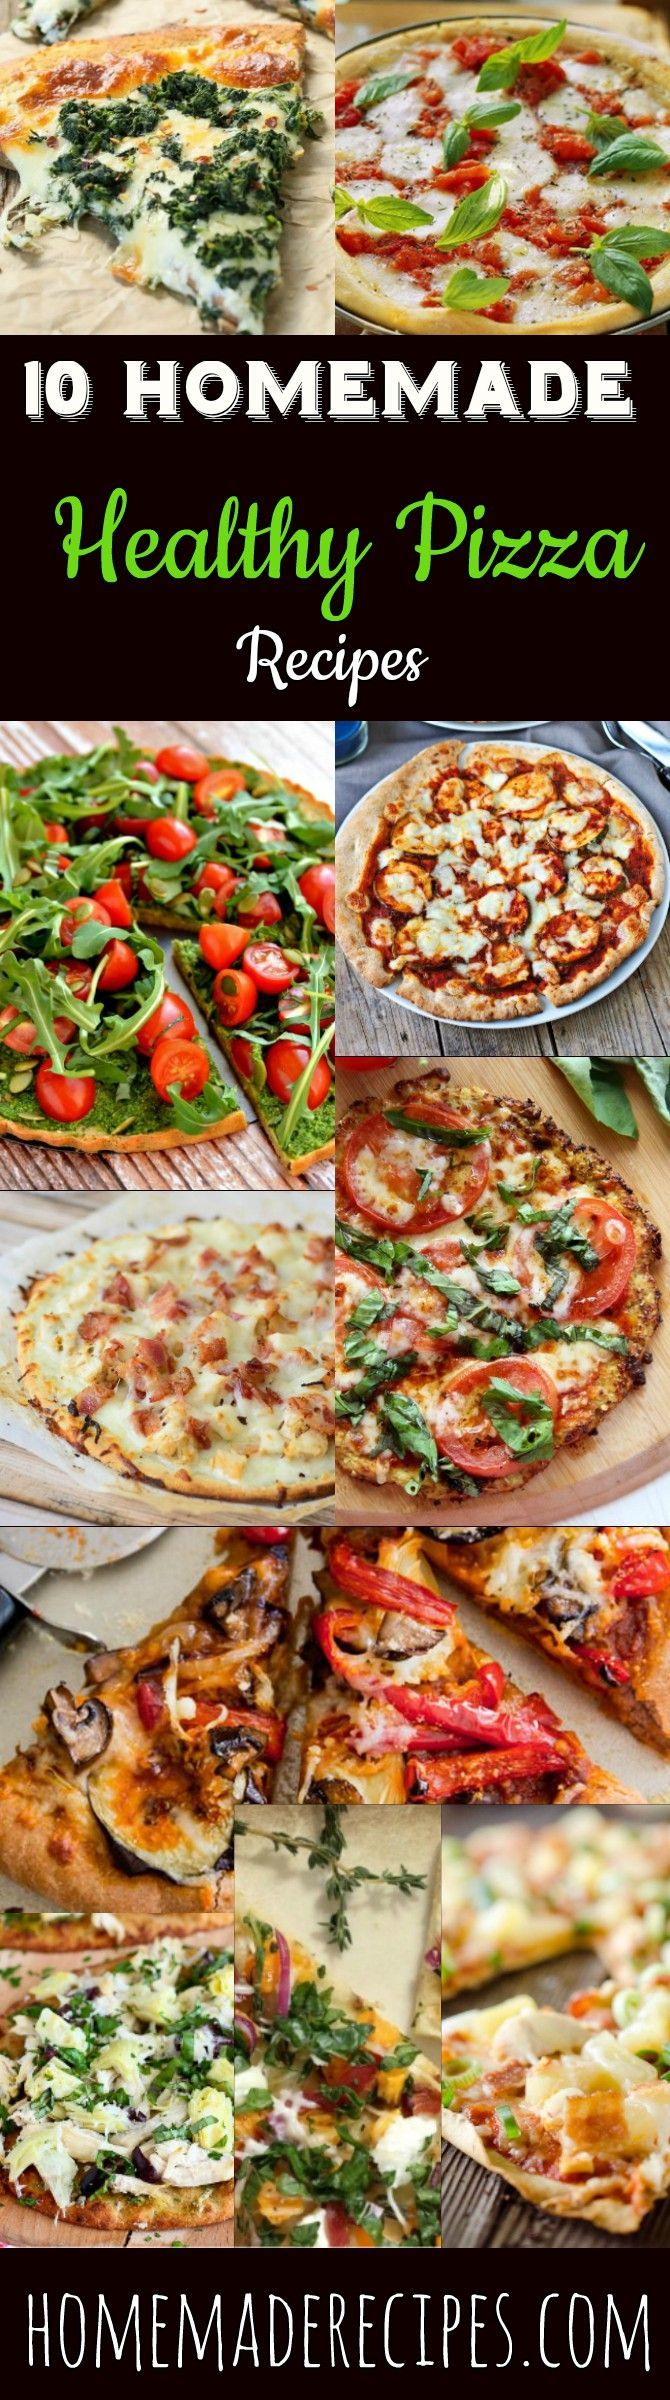 10 Homemade Healthy Pizza Recipes   Go Healthier And  Don't Sacrifice The Taste, With These Gluten Free And Delicious Pizza Recipes That Has All The Flavor Your Looking For! by Homemade Recipes at  http://homemaderecipes.com/healthy-pizza-recipes/